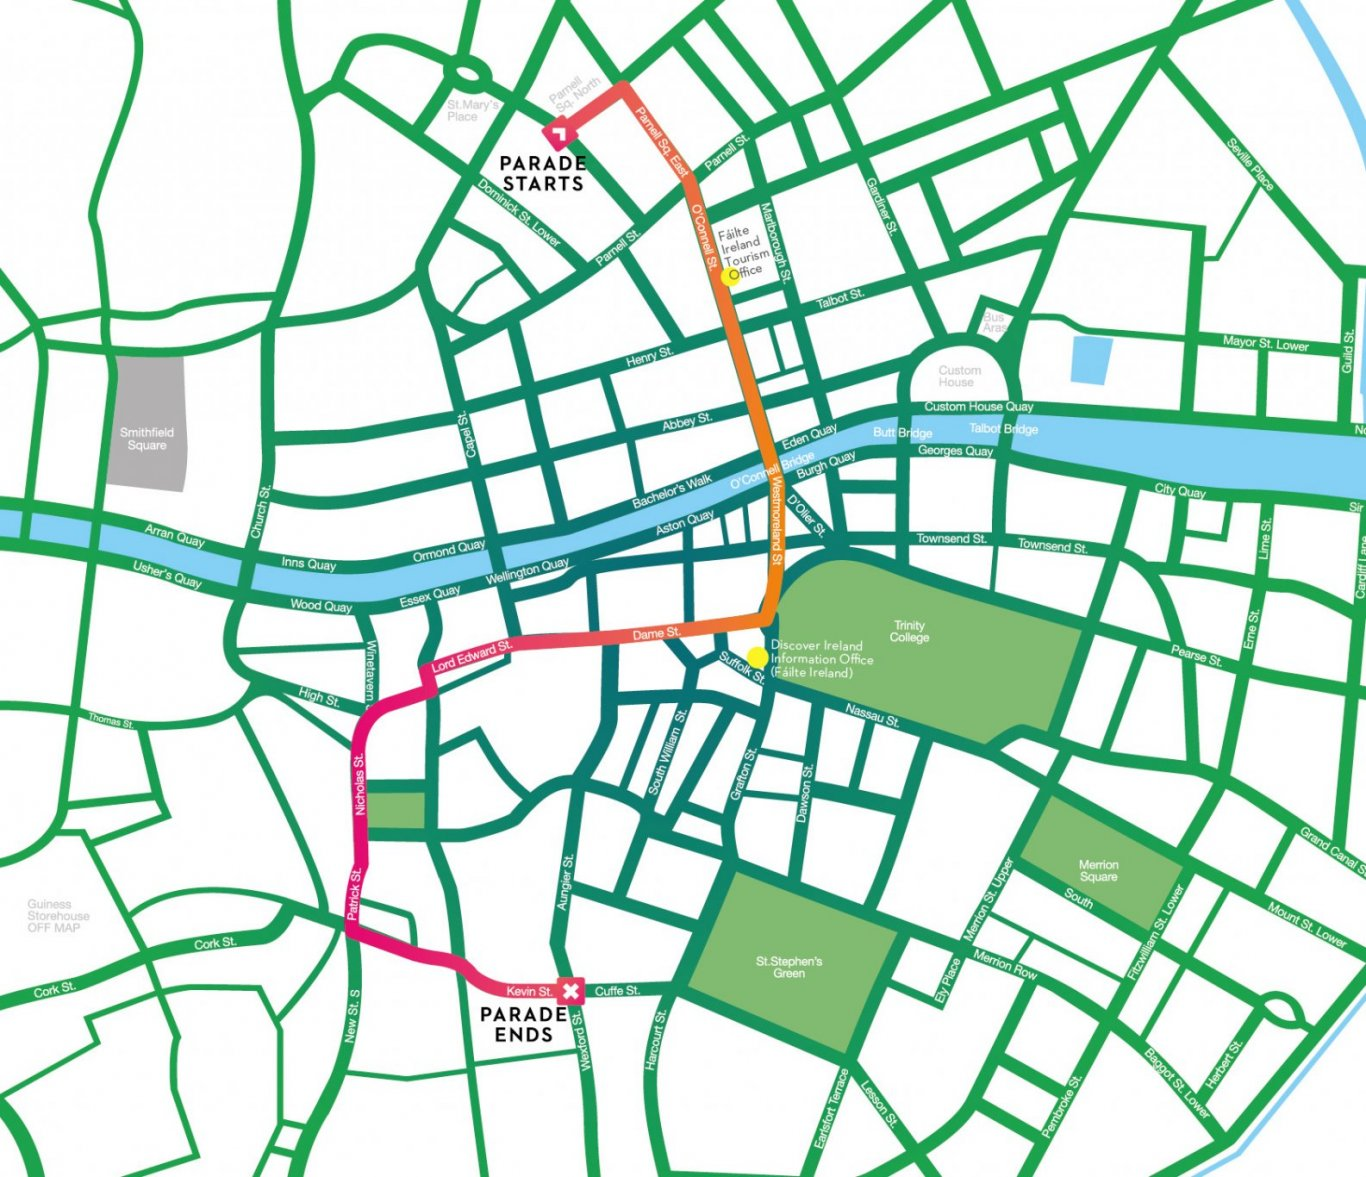 st-patricks-day-parade-route-dublin-city